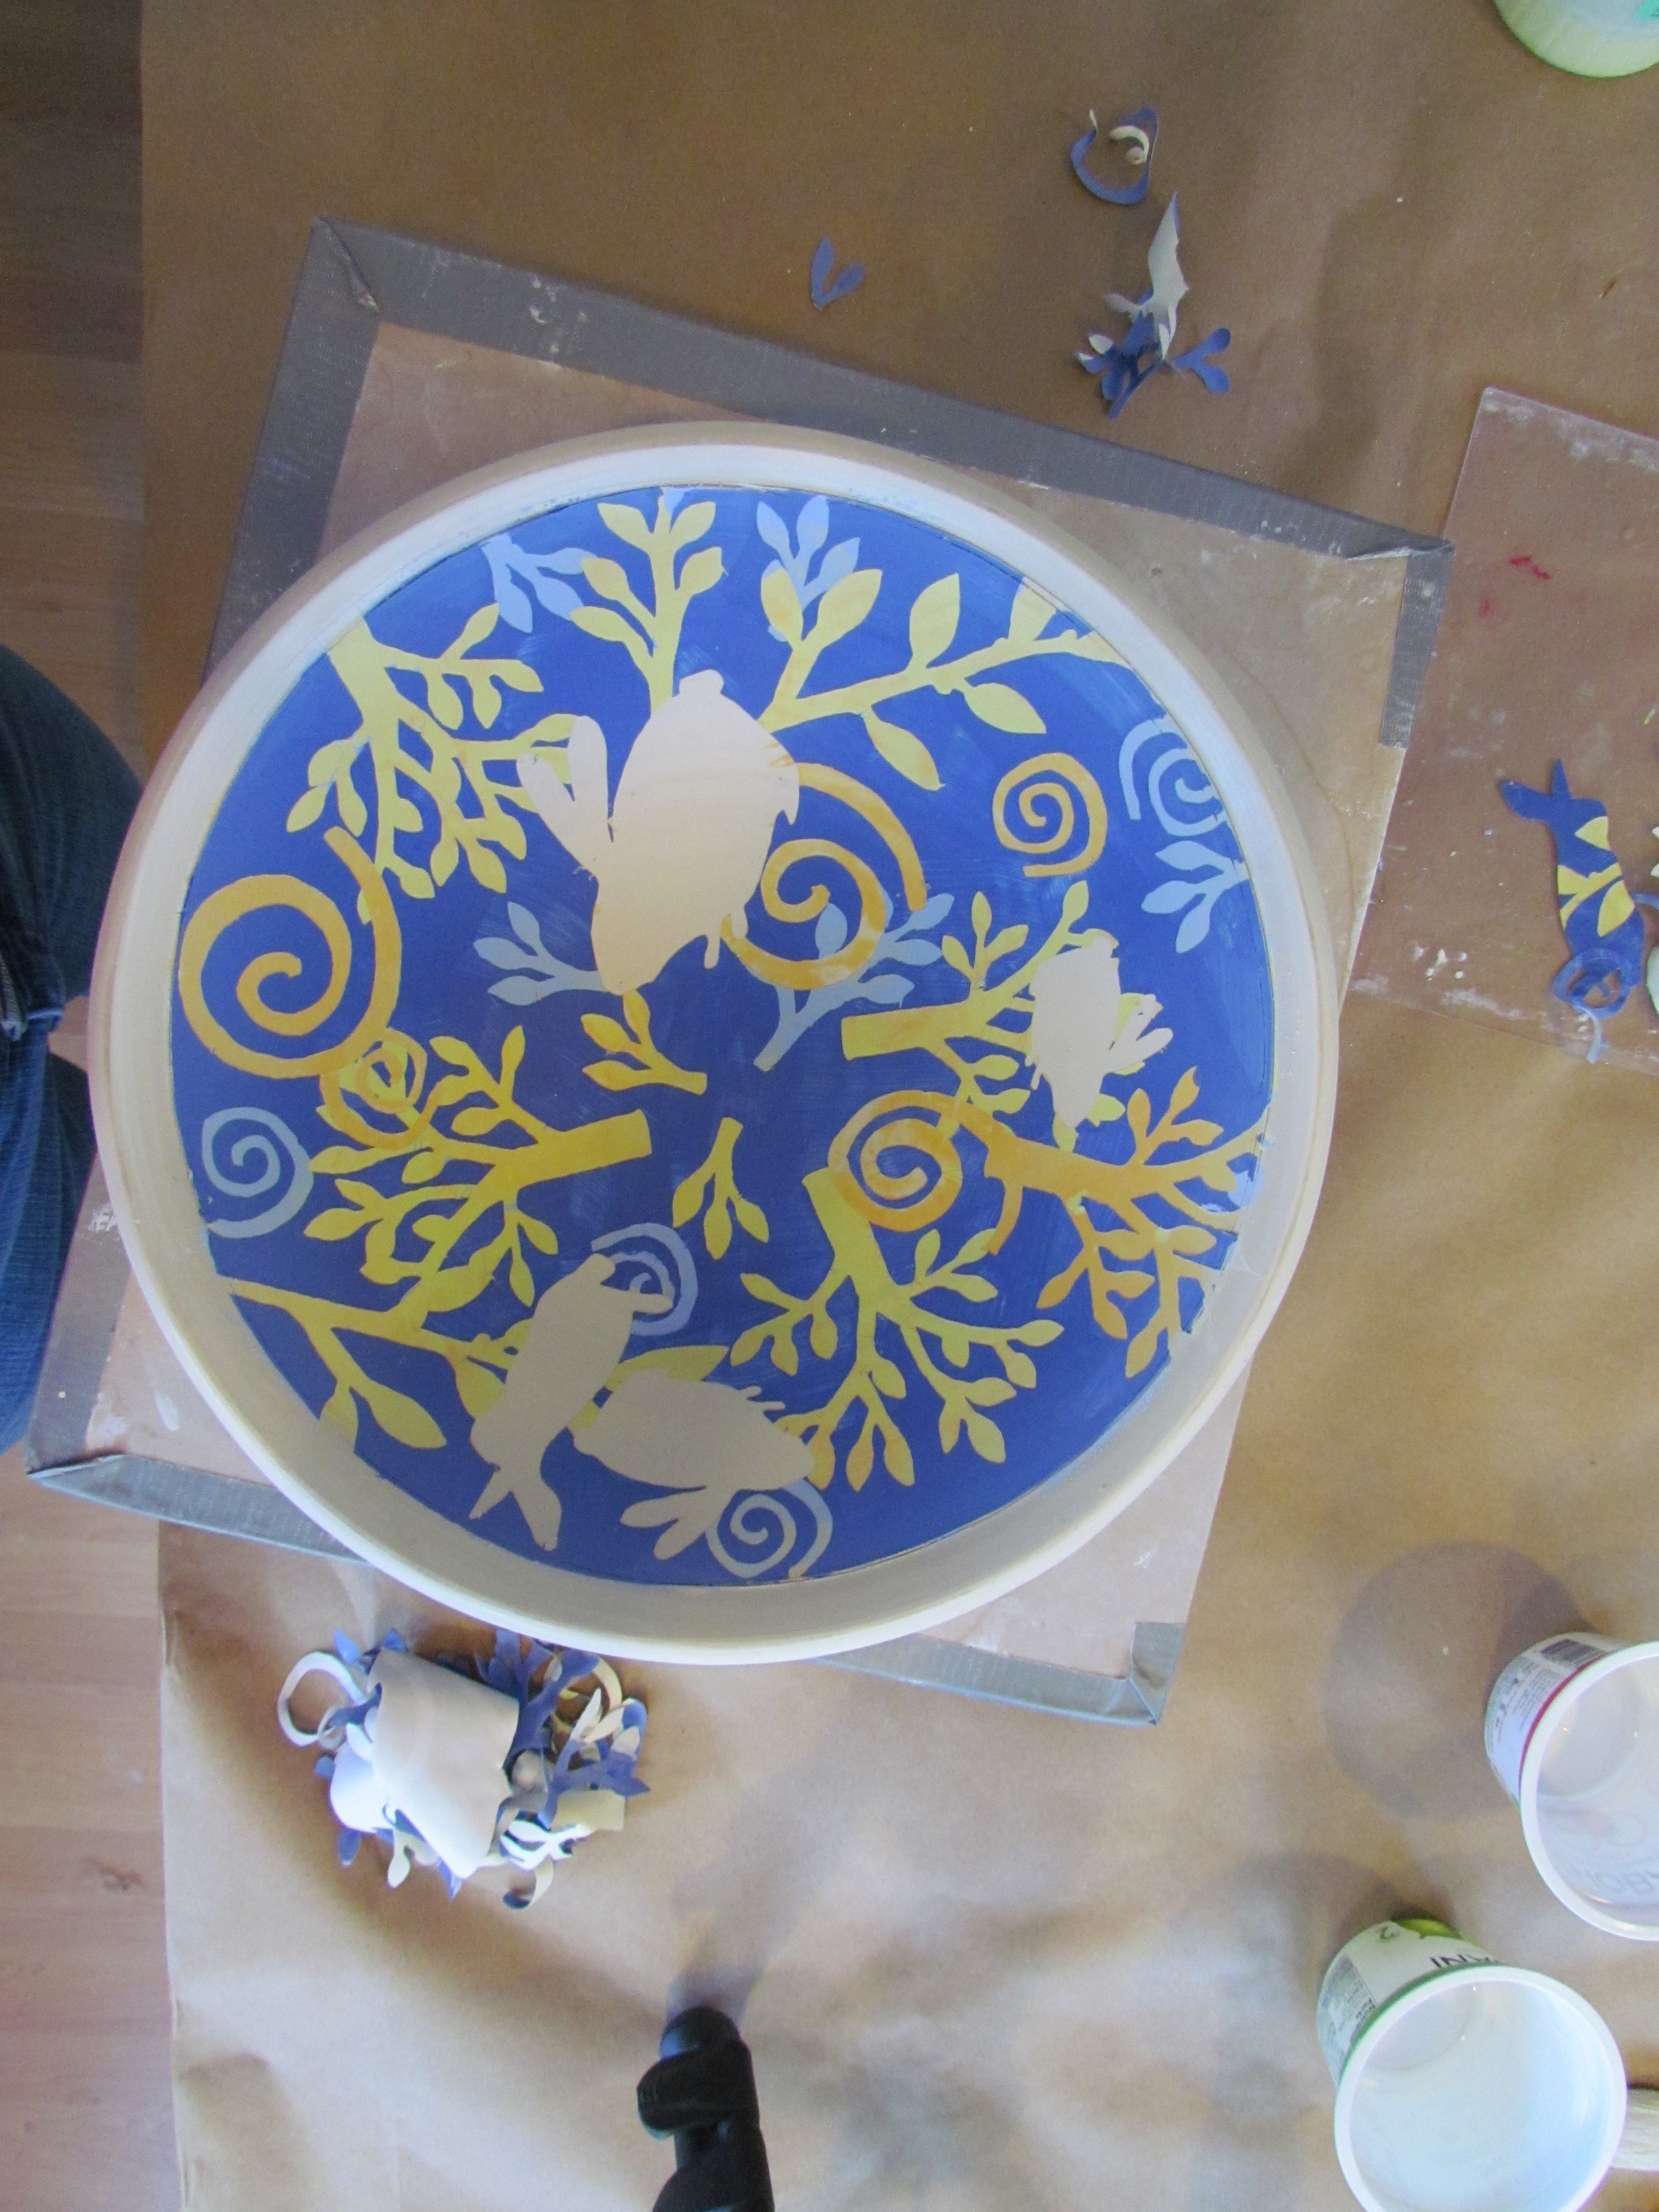 Once the final layer of underglaze has dried (in this case navy blue), all of the paper stencils are removed to reveal multiple layers of colors.   The piece is then fired in a kiln to 1940 degrees F . After this firing, the bowl will be painted with clear glaze and fired a second time to 2232 degrees F.